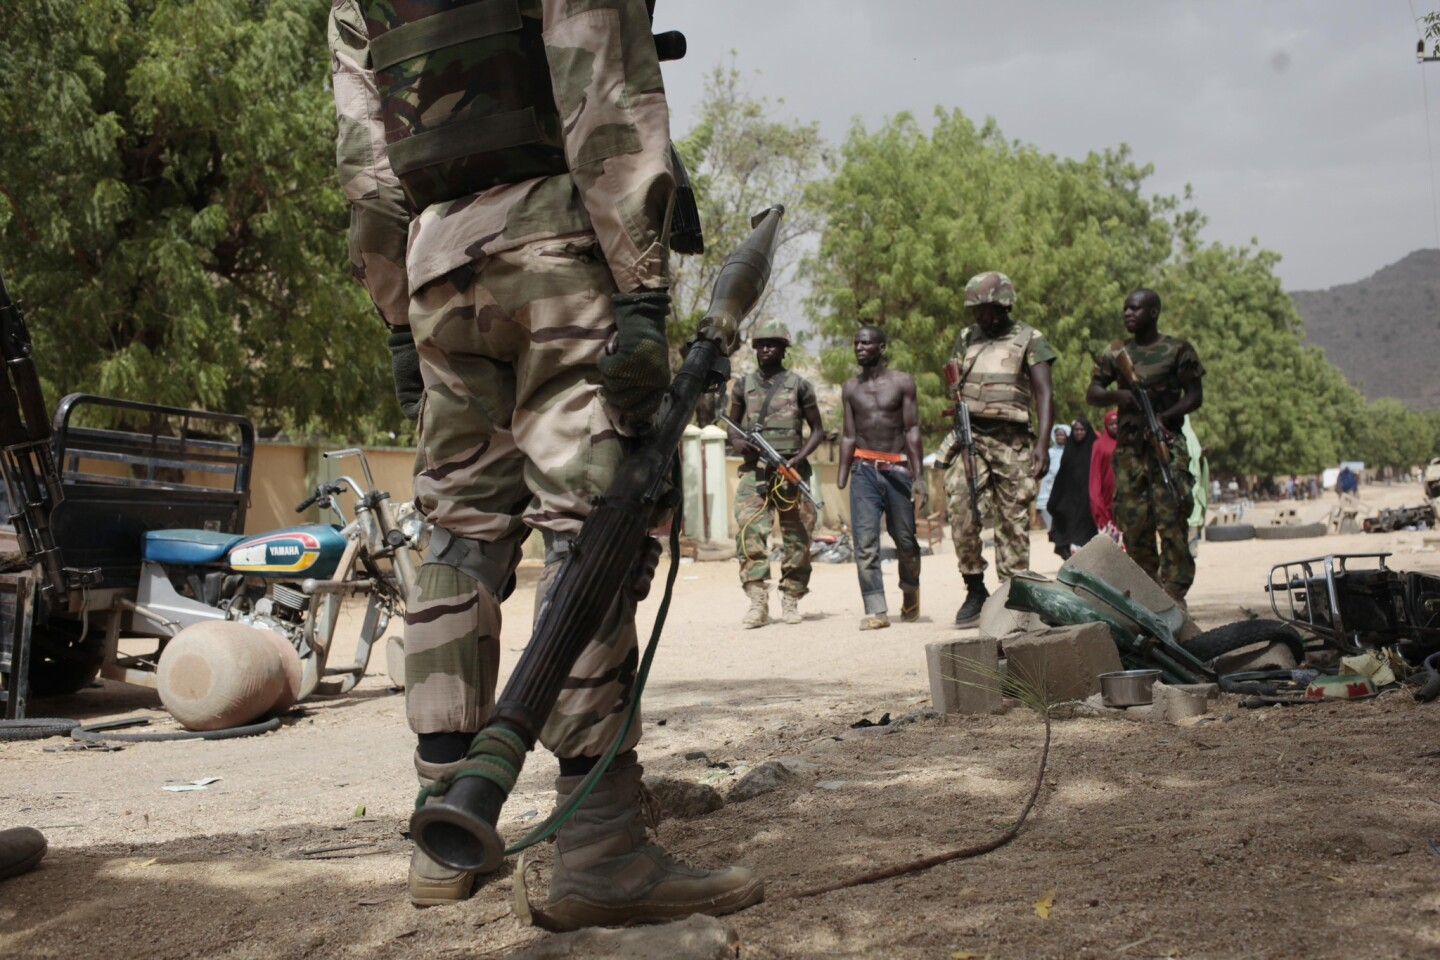 Nigerian soldiers in Gwoza escort Hassan Usman, who had been forced into labor by Boko Haram and had his hand amputated after the Islamic militants accused him of stealing fuel.